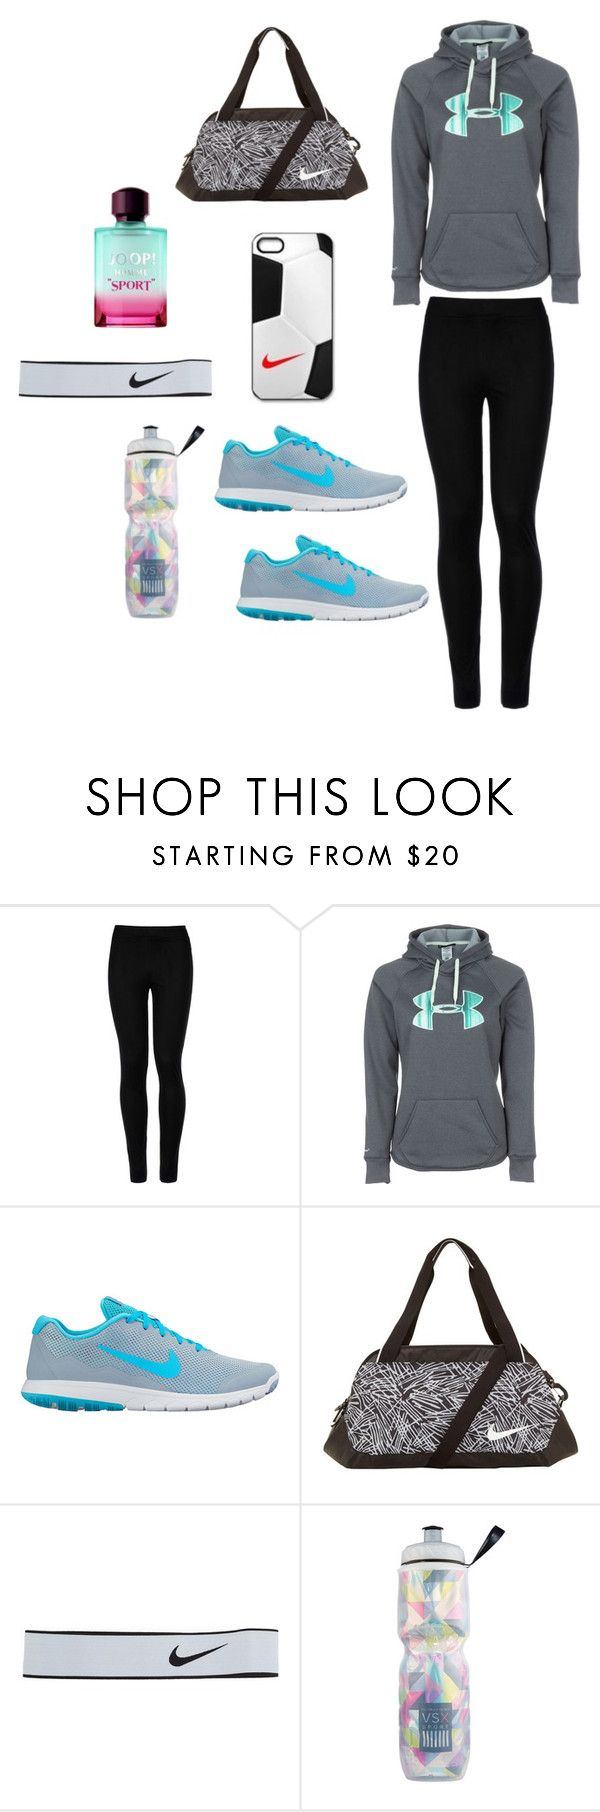 """""""Sporty Outfit"""" by kayanna2 ❤ liked on Polyvore featuring Wolford, Under Armour, NIKE, Victoria's Secret and Joop"""